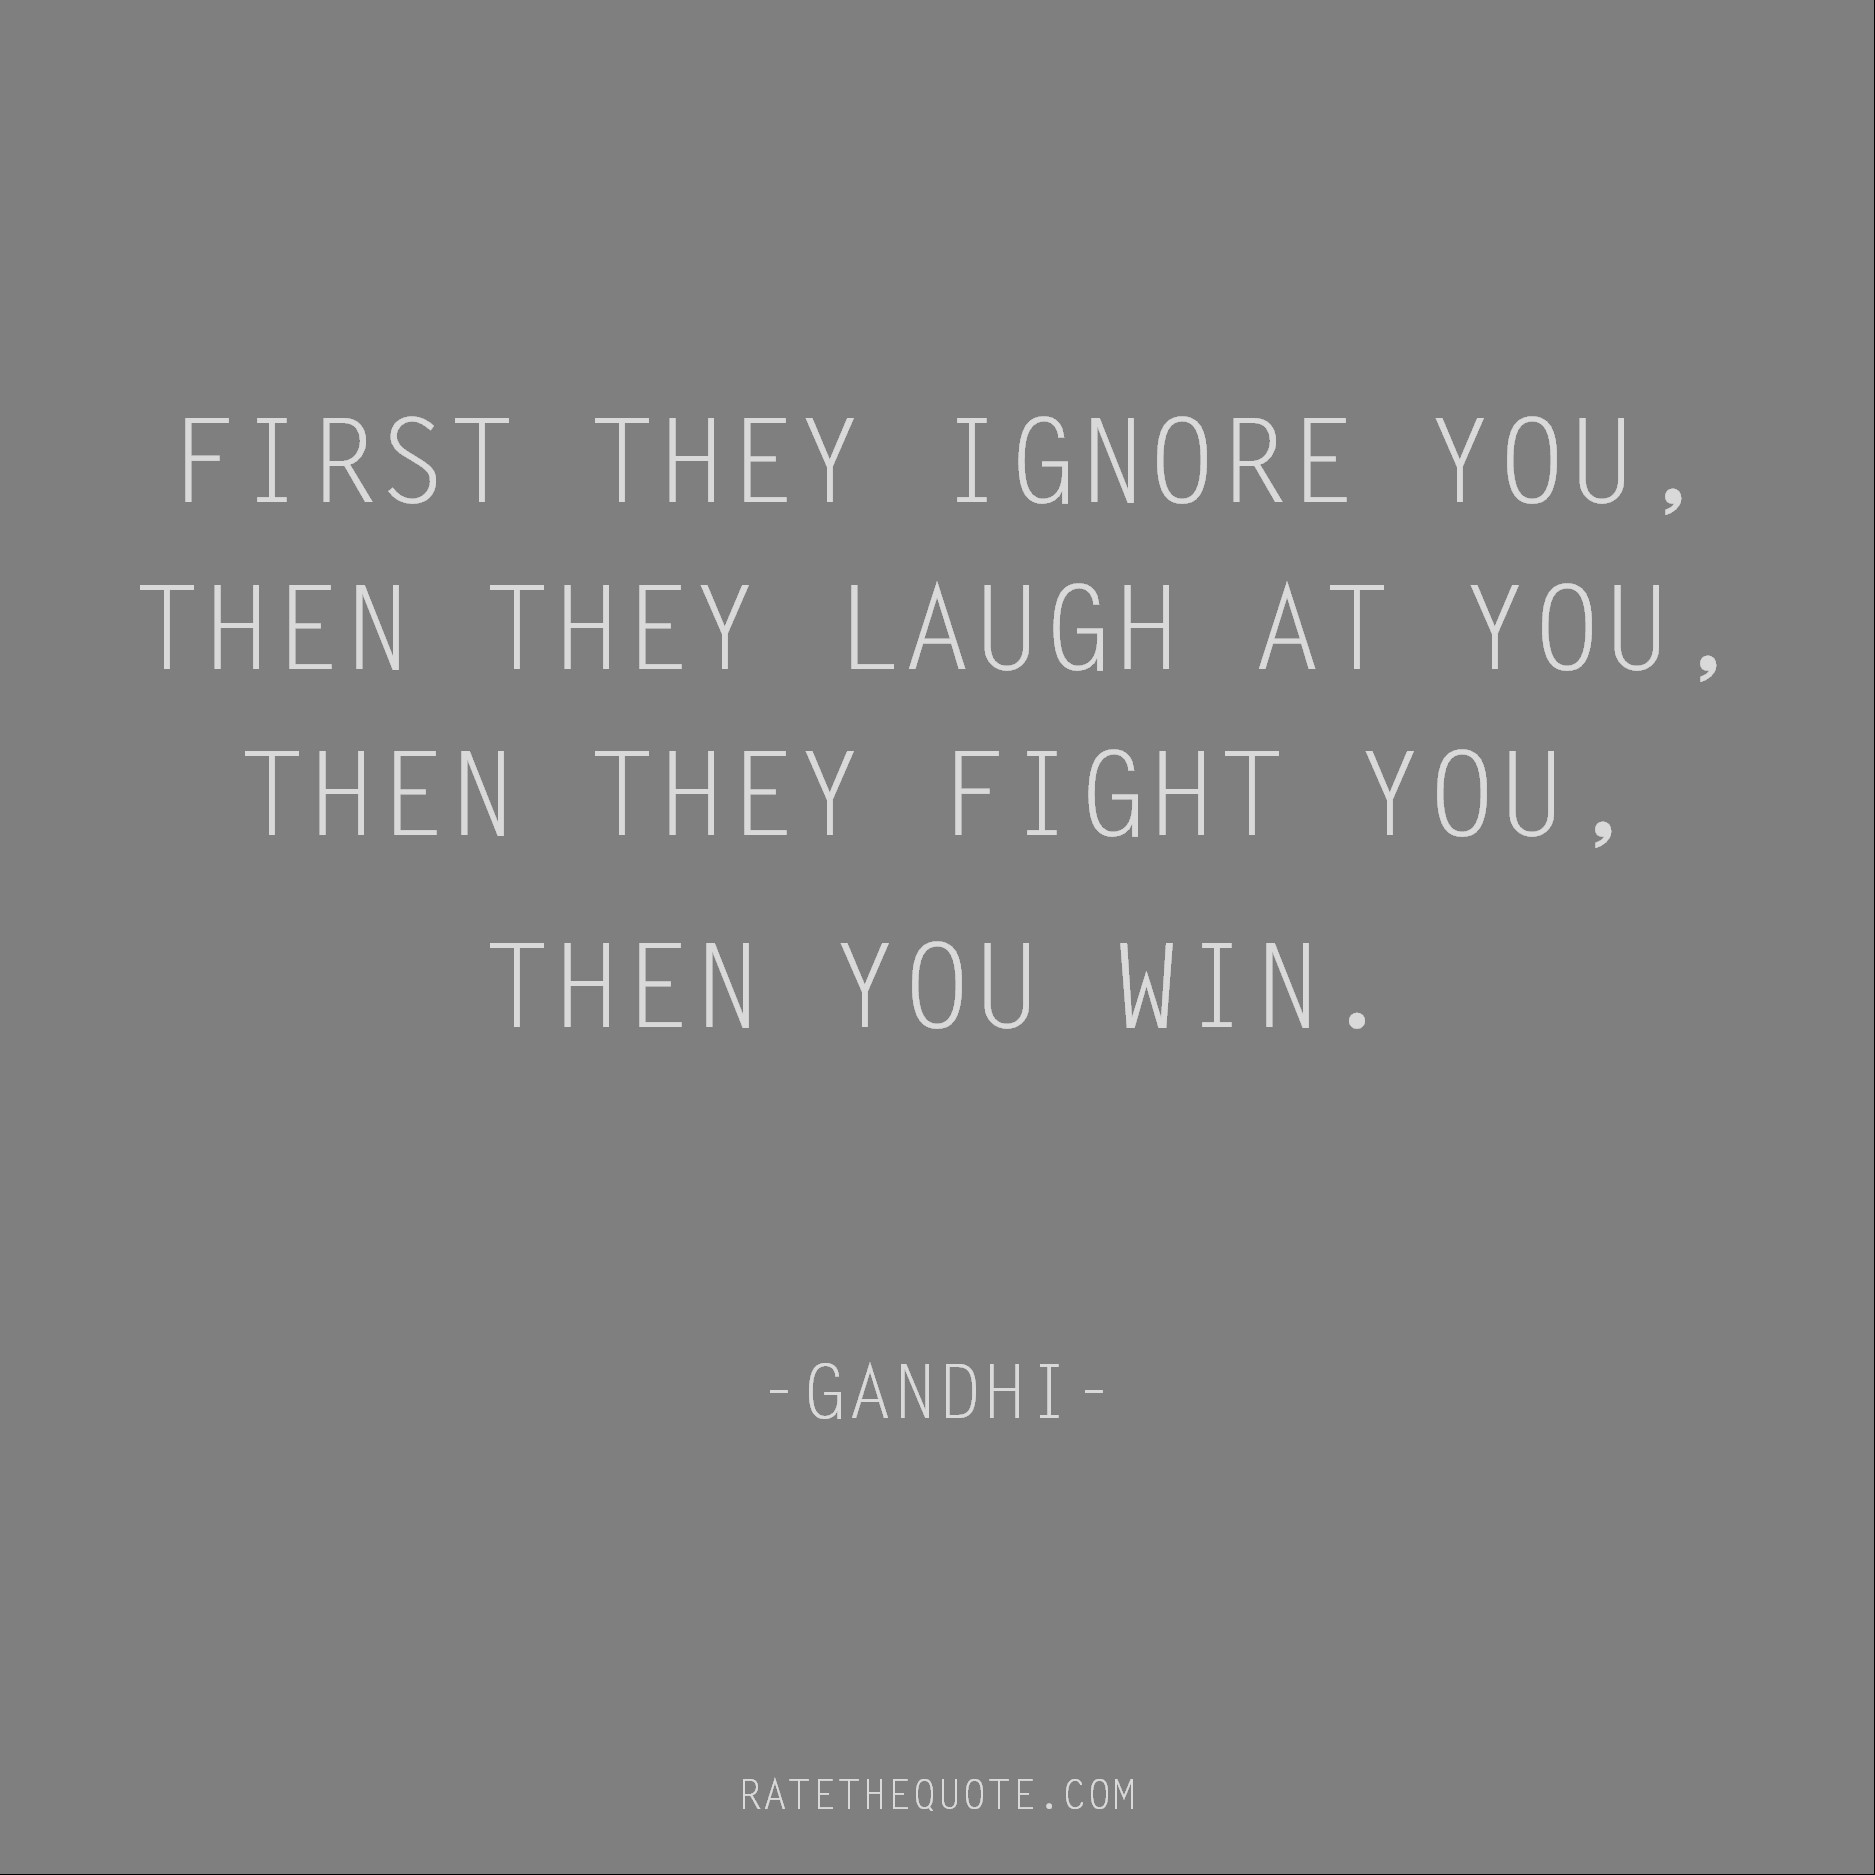 Quotes by Gandhi